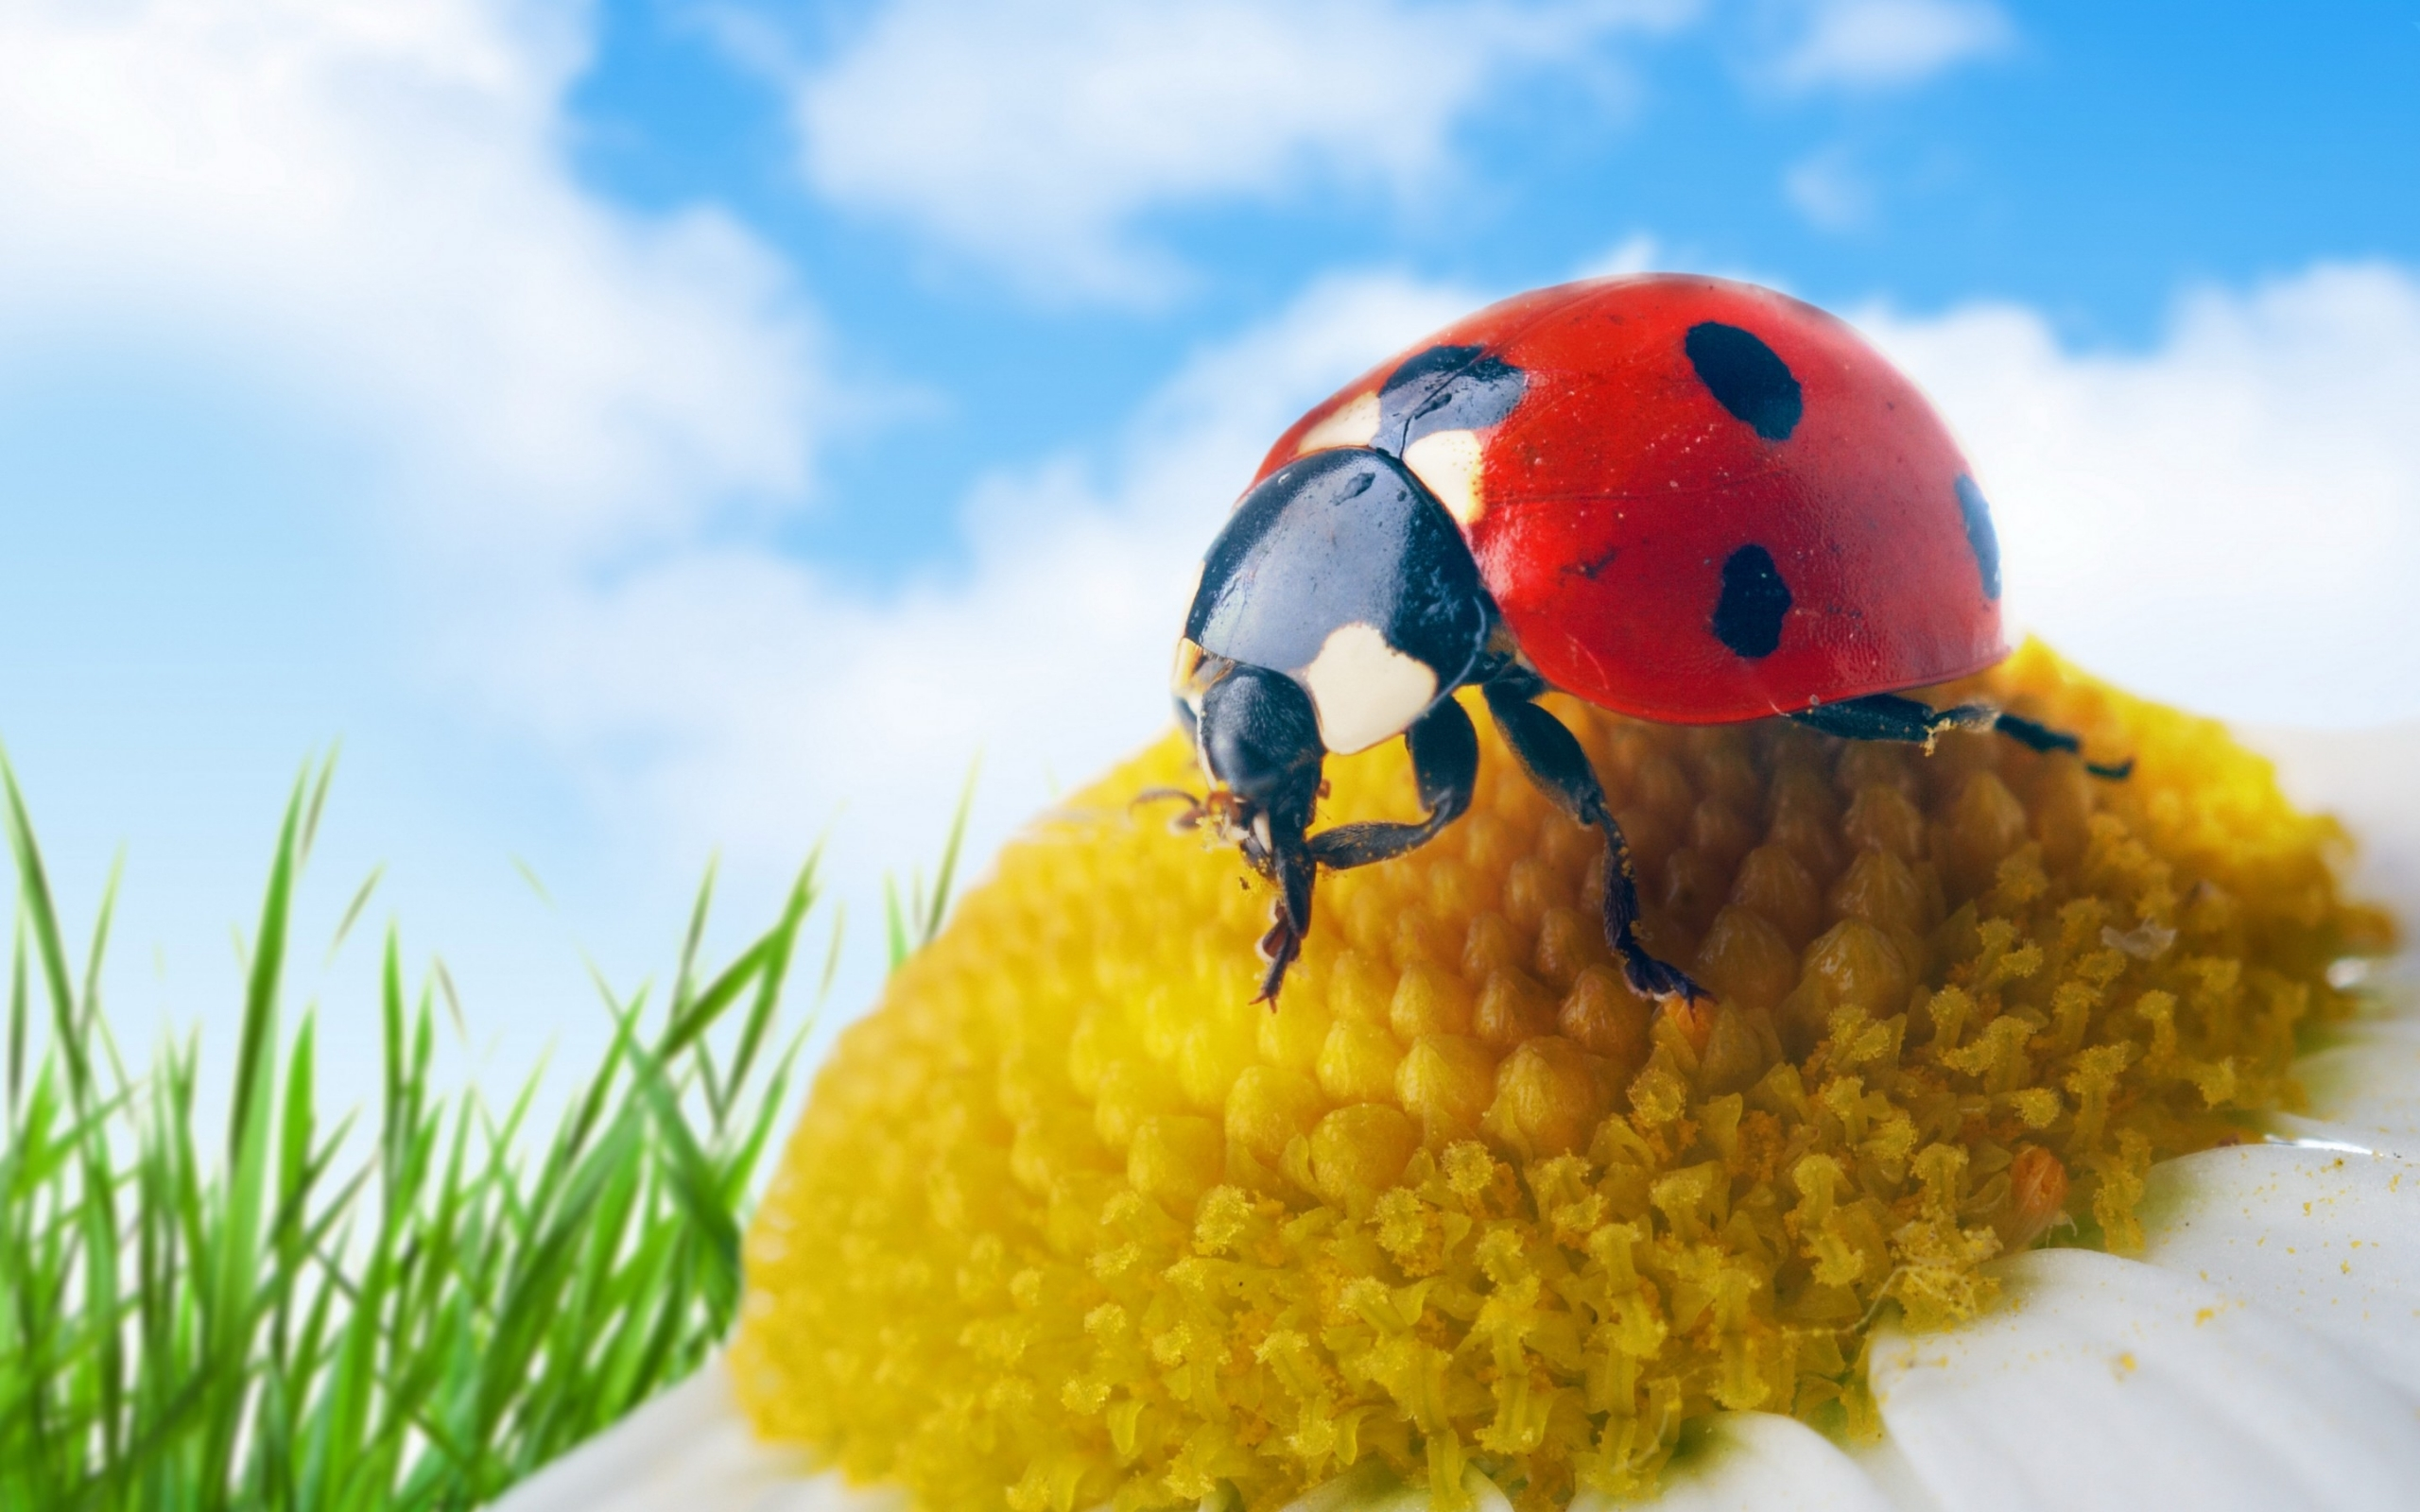 30170 download wallpaper Insects, Ladybugs screensavers and pictures for free